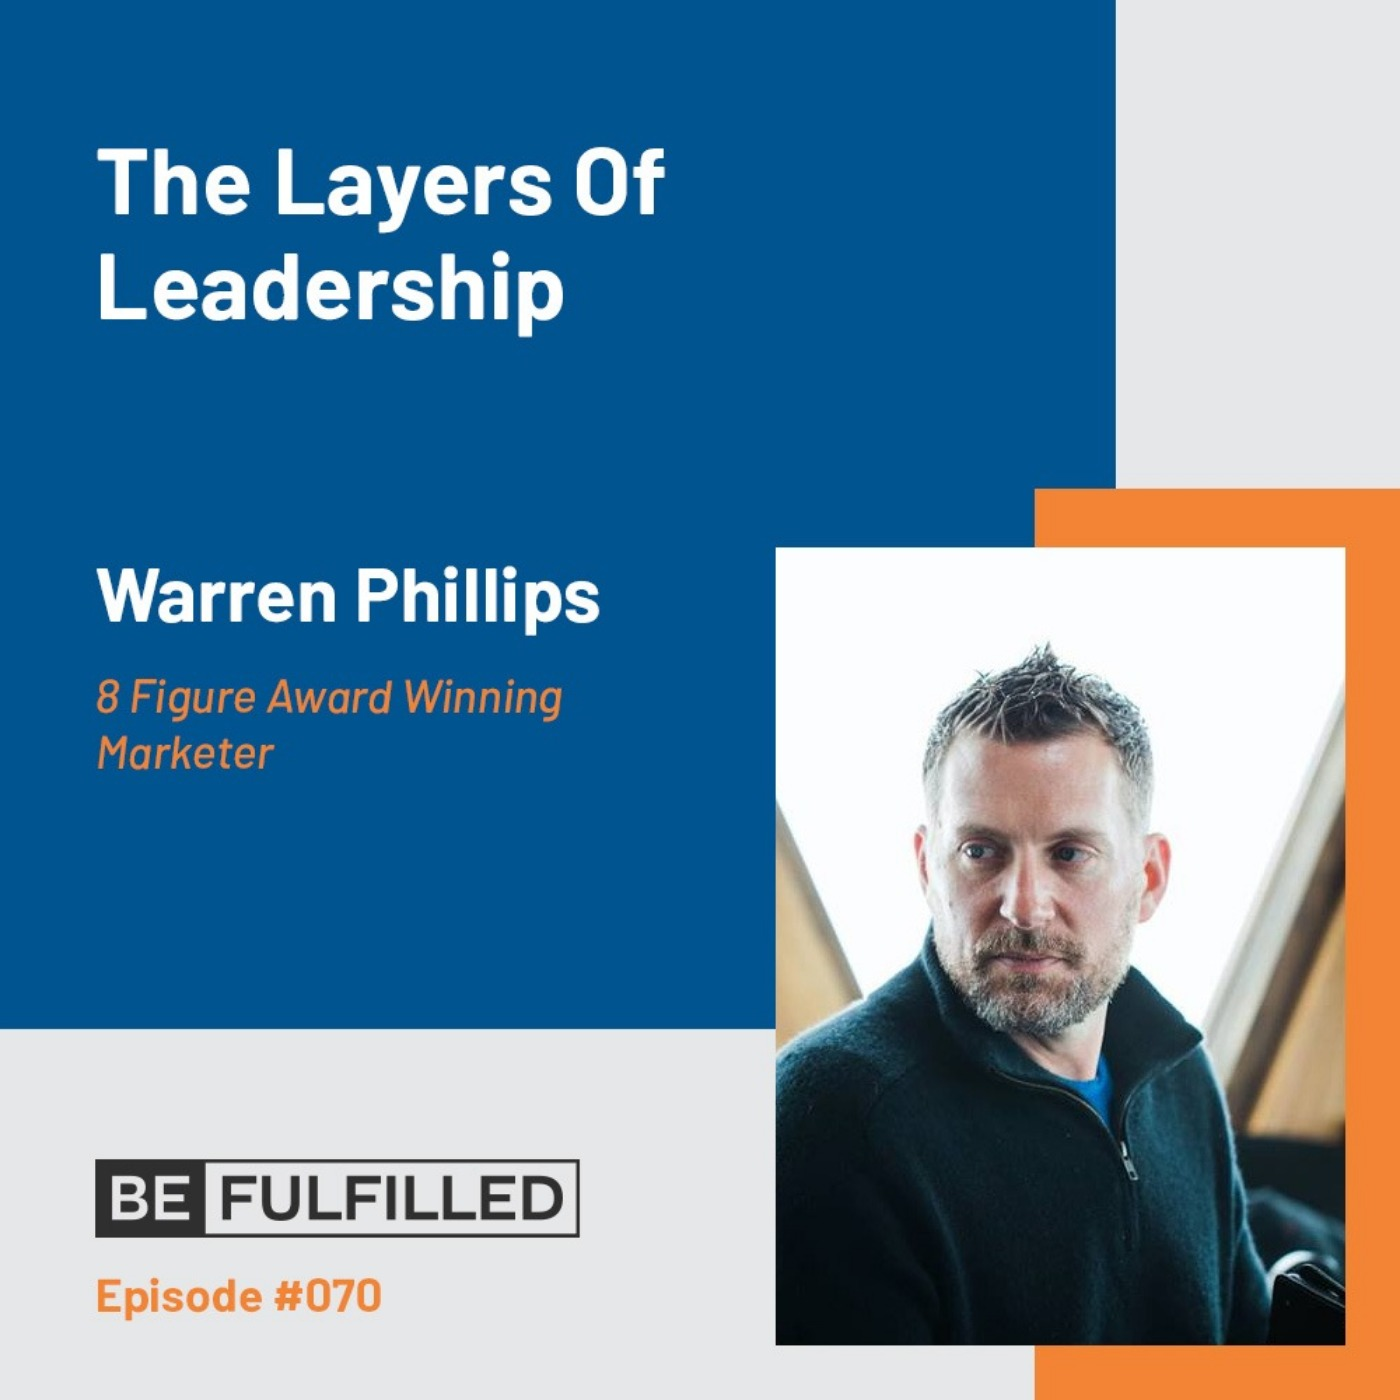 The Layers Of Leadership - Warren Phillips